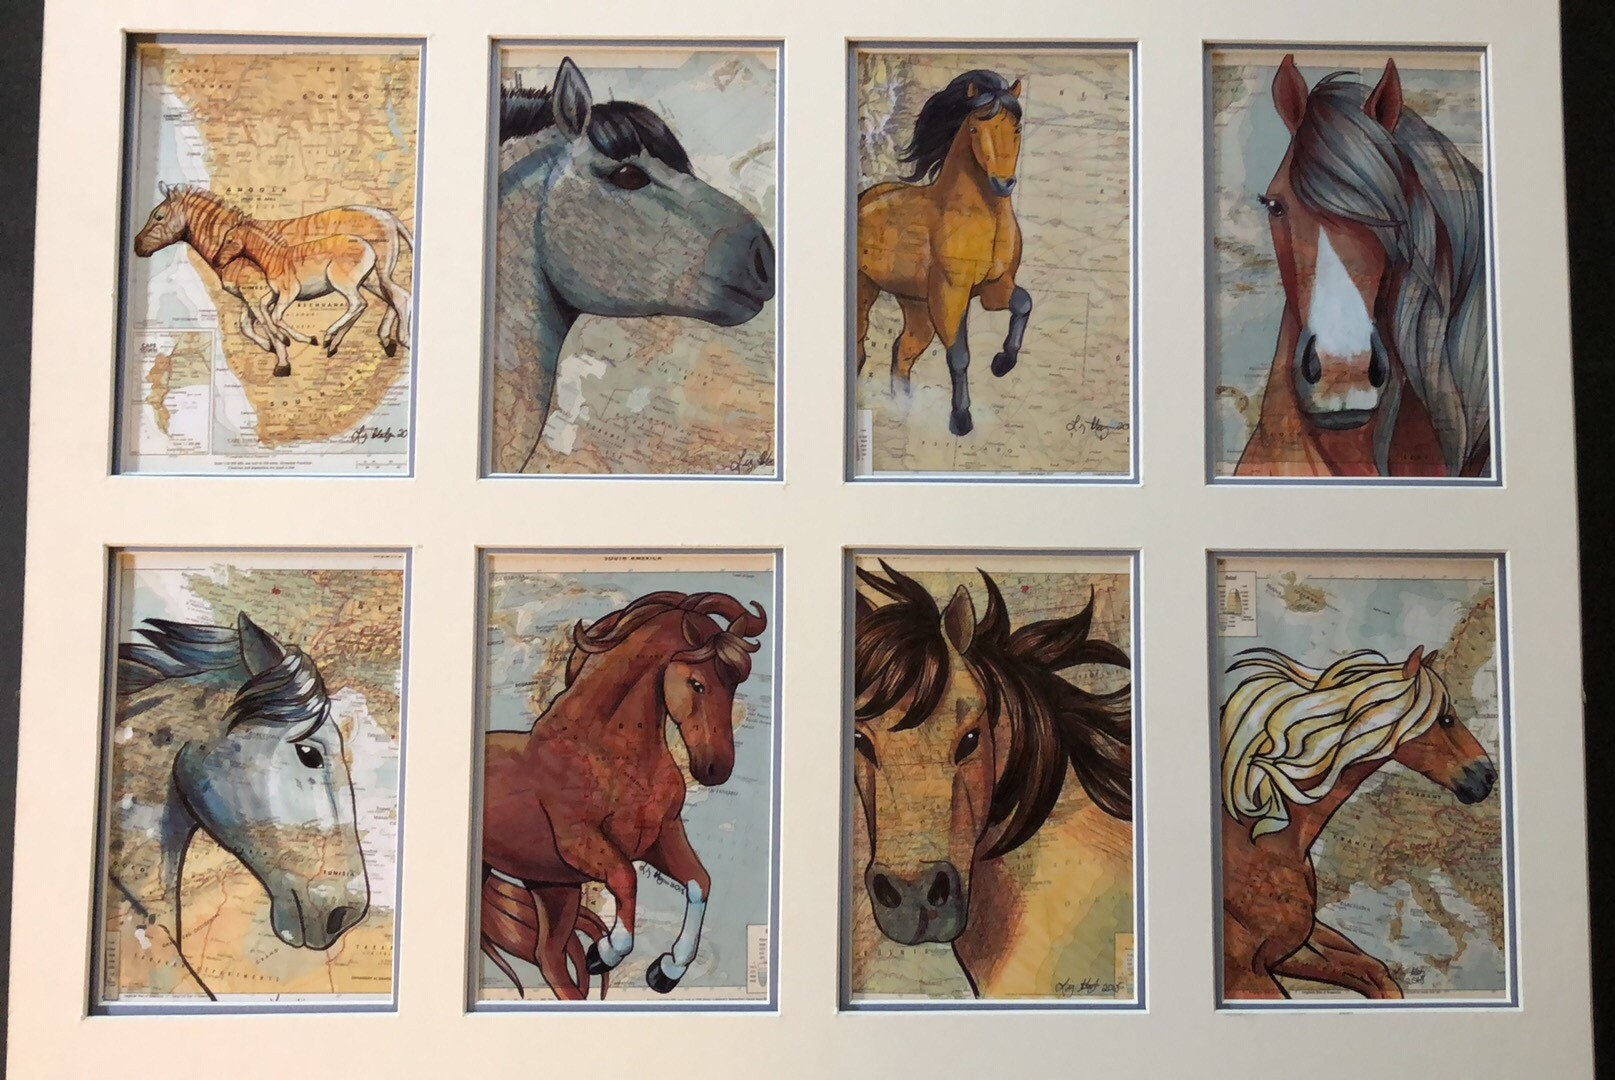 20x16 Matted Horse Collage Slightly Imperfect Double Mat Liz Staley Studios